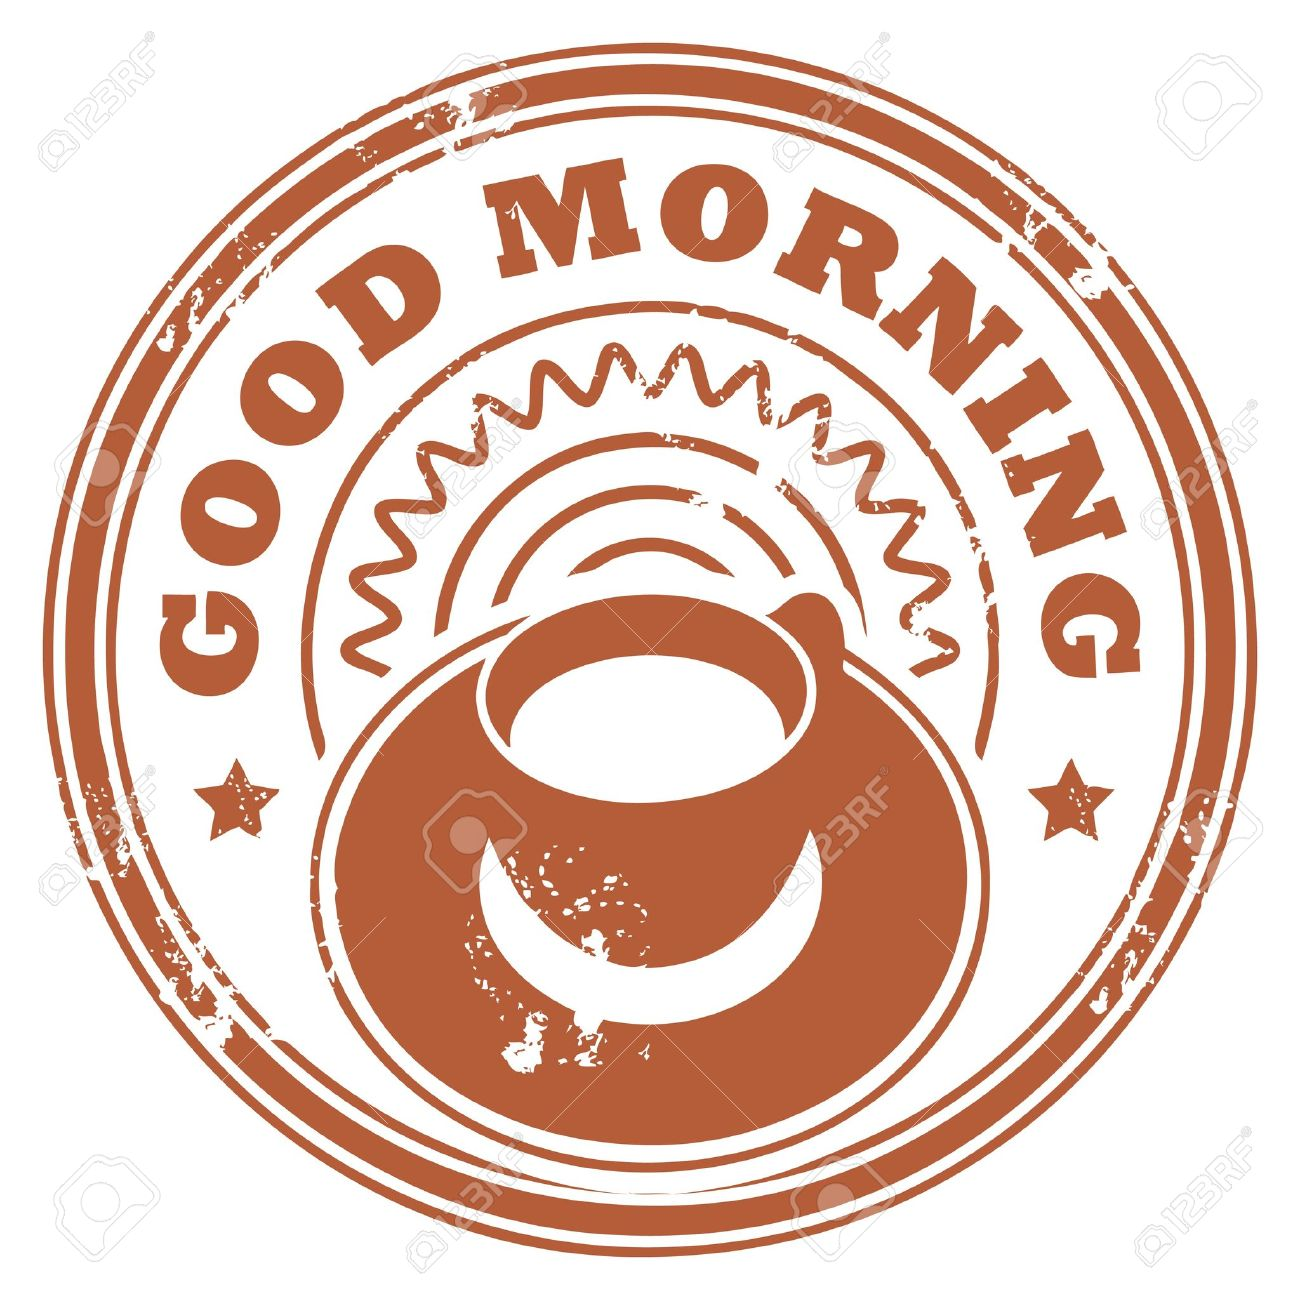 Grunge stamp with coffee cup and the text Good Morning written inside the stamp Stock Vector - 14410719